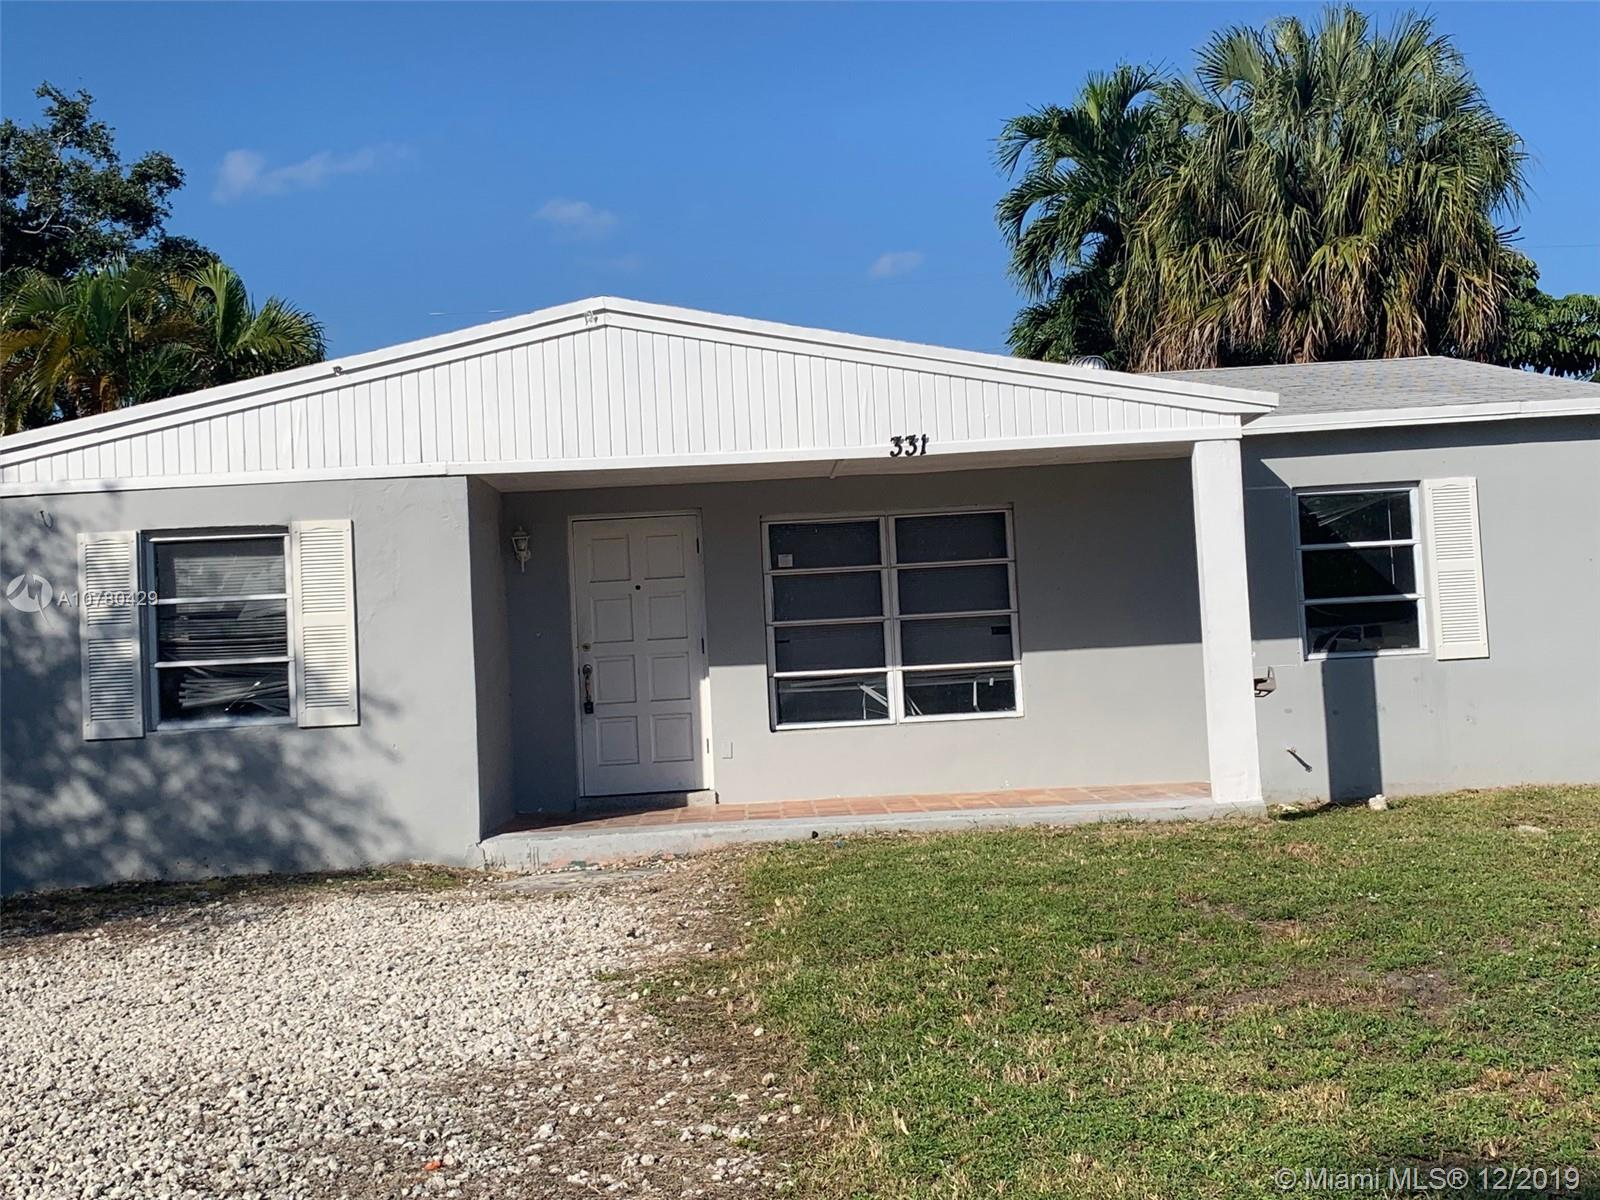 Beautiful 3 bedrooms 2 bathrooms recently remodeled in 2017.  Backyard is fully fenced with gates on each side.  New sprinkler system and pump.  Comfortably at 3/5 miles of Lauderdale by the Sea, beaches, restaurants at less than 5 minutes, major supermarkets and hospitals and 2 minutes east of I-95.